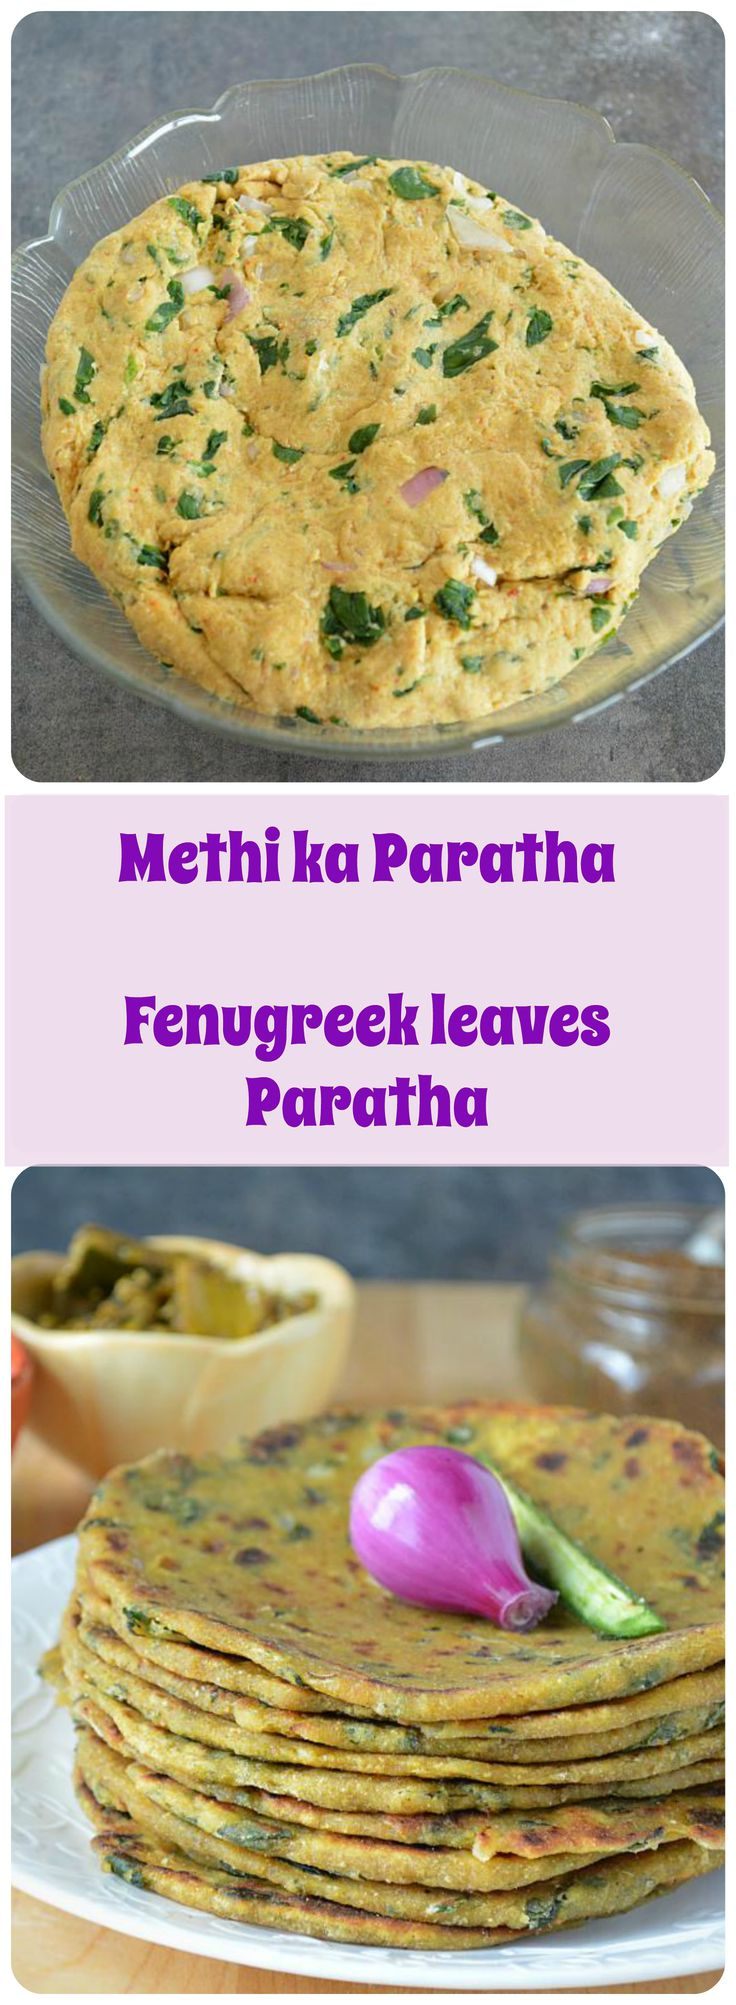 A healthy breakfast today – Methi Paratha Recipe. Coarsely chopped fenugreek leaves combined with wheat flour, semolina and spices creates a healthy and nutritious morning breakfast. #wholewheatflour #methi #methileaves #fenugreekleaves #paratha #thepla #methithepla #indianfoods #indianbreakfast